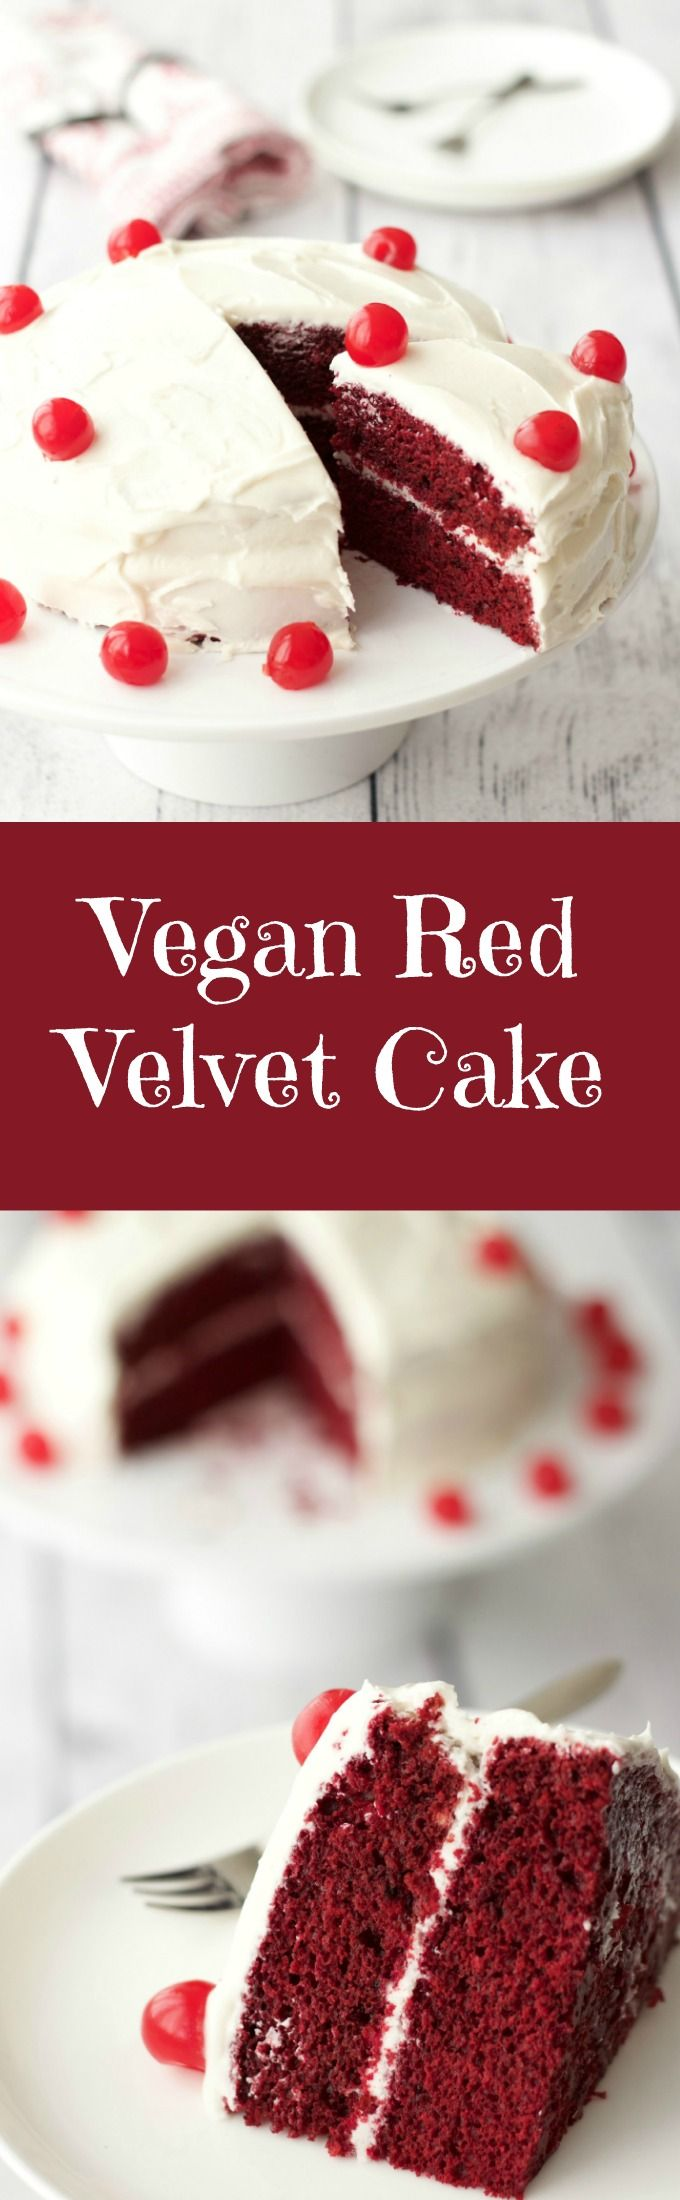 Rich, moist and smooth vegan red velvet cake topped with lemon buttercream frosting and maraschino cherries. #vegan #dairy-free #lovingitvegan #redvelvet